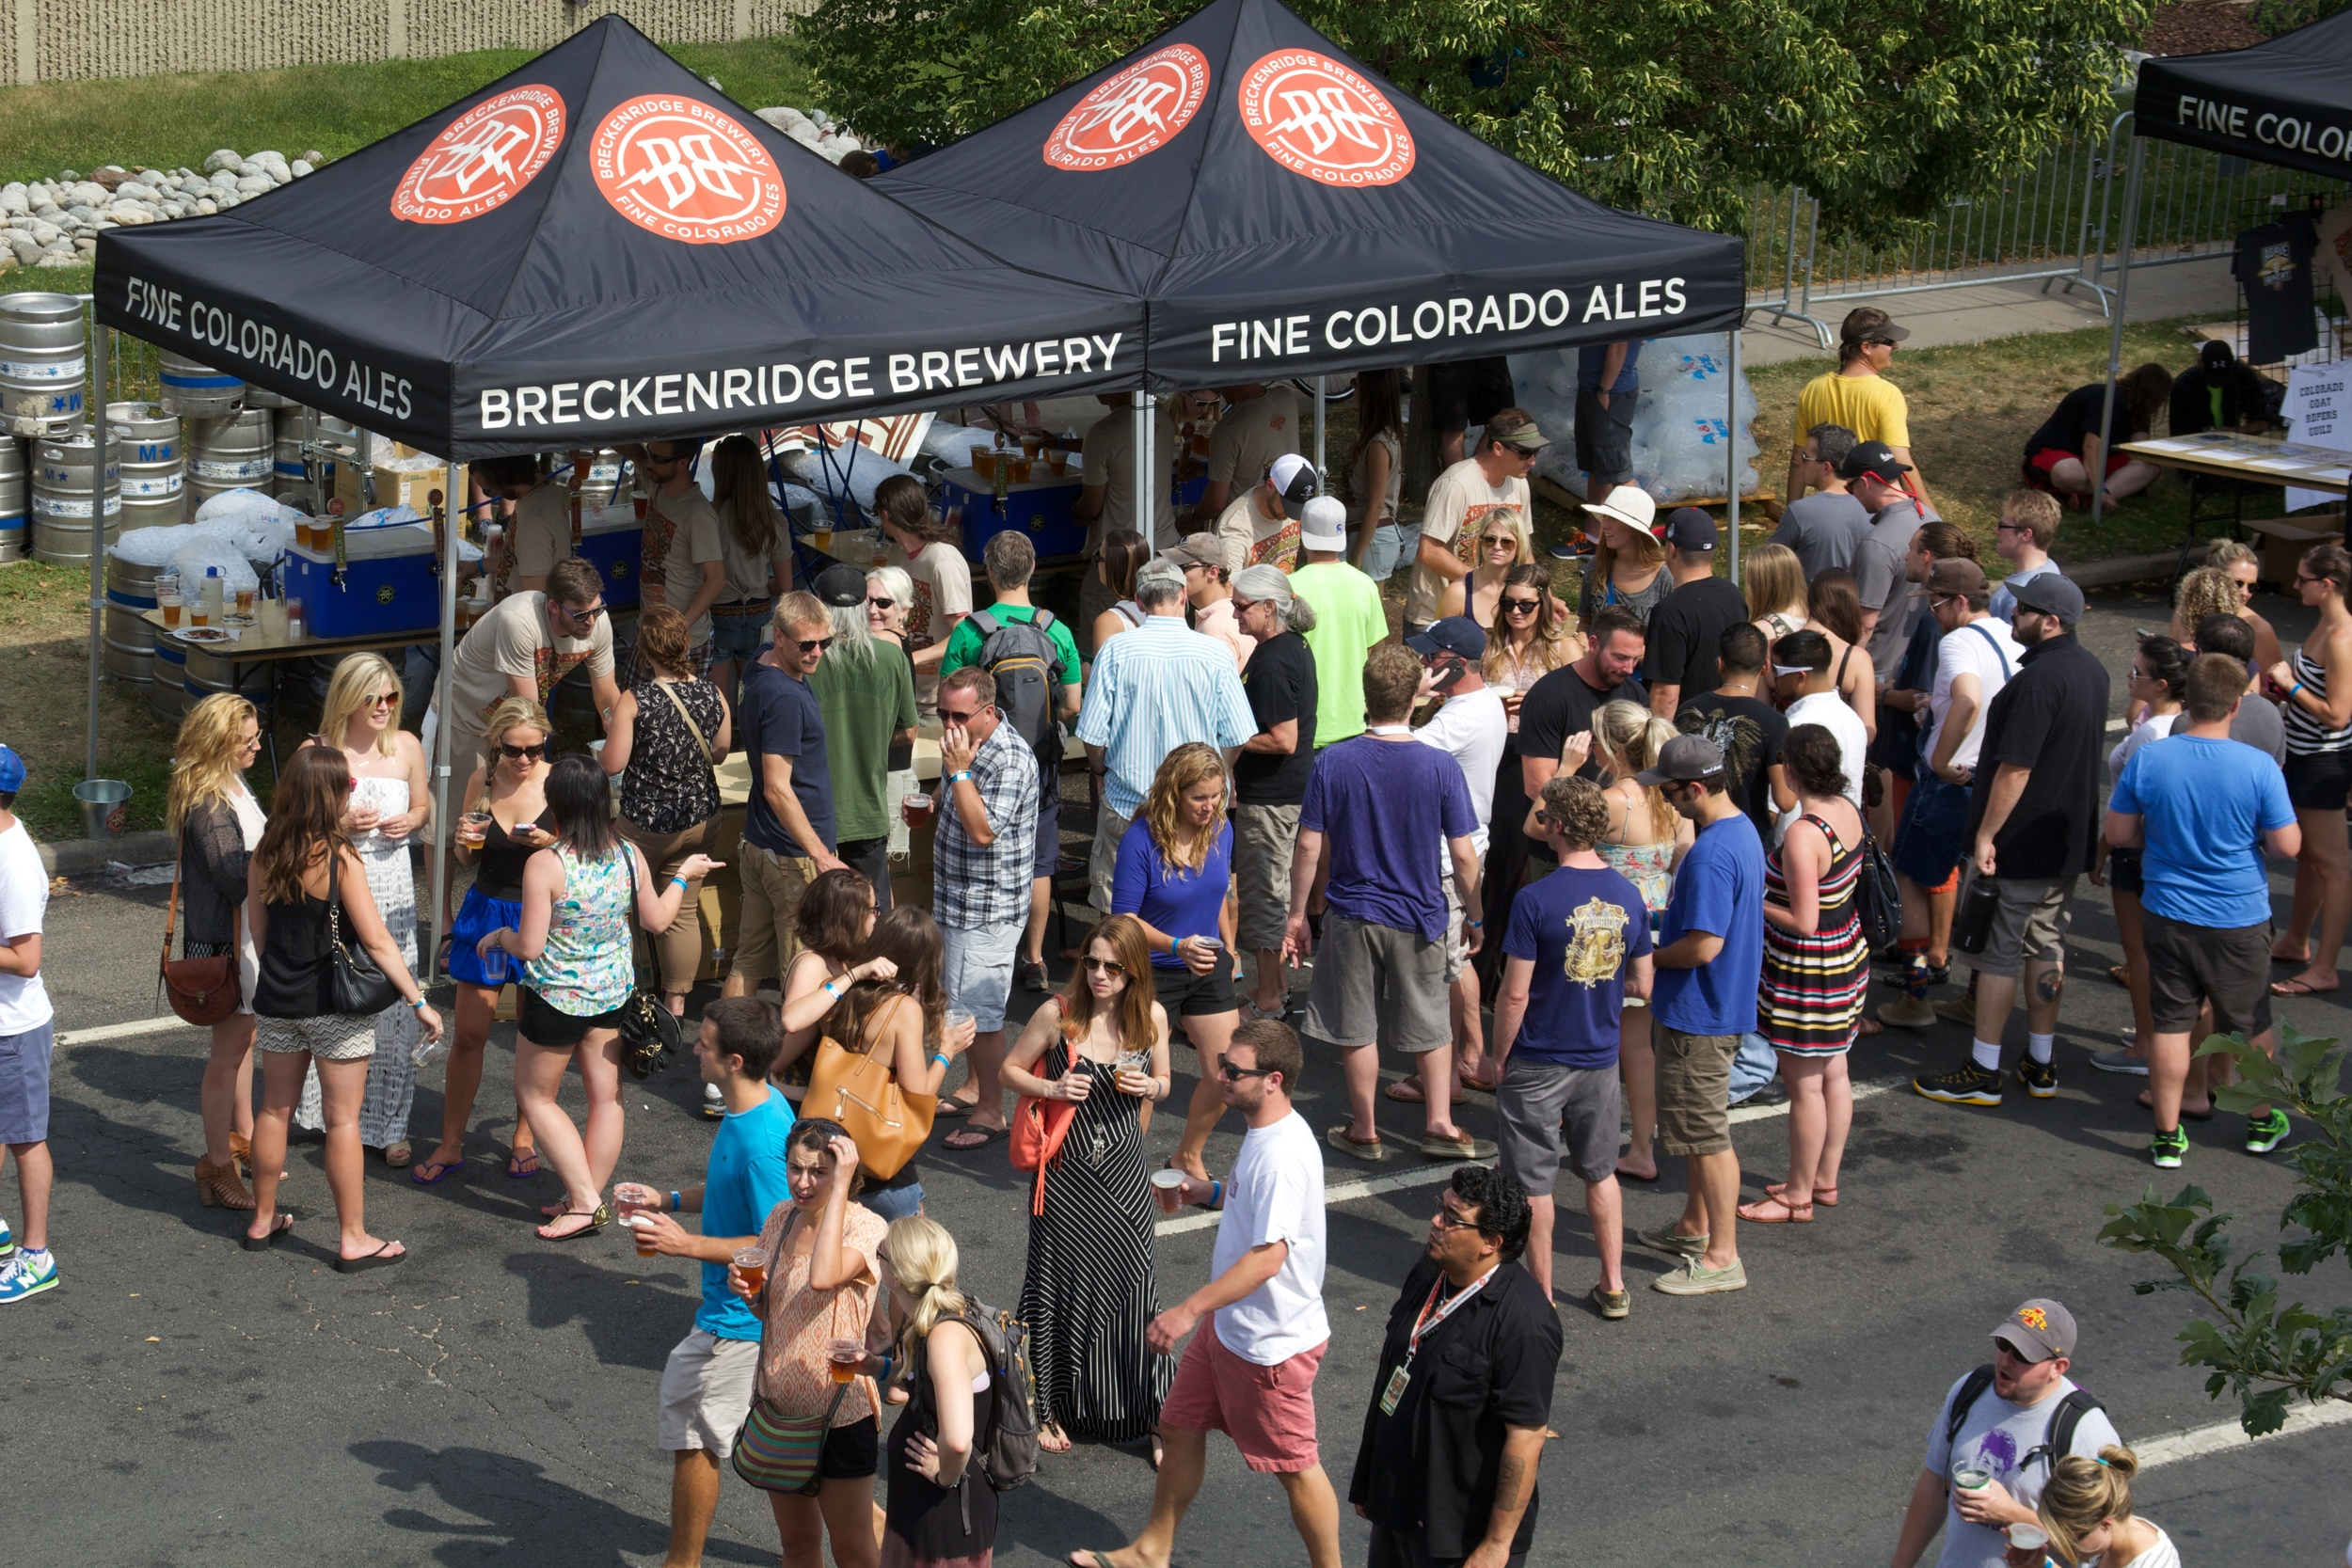 Breck Brew packed their annual block party this year with record breaking crowds. (Photo Credit: Robert Castro)